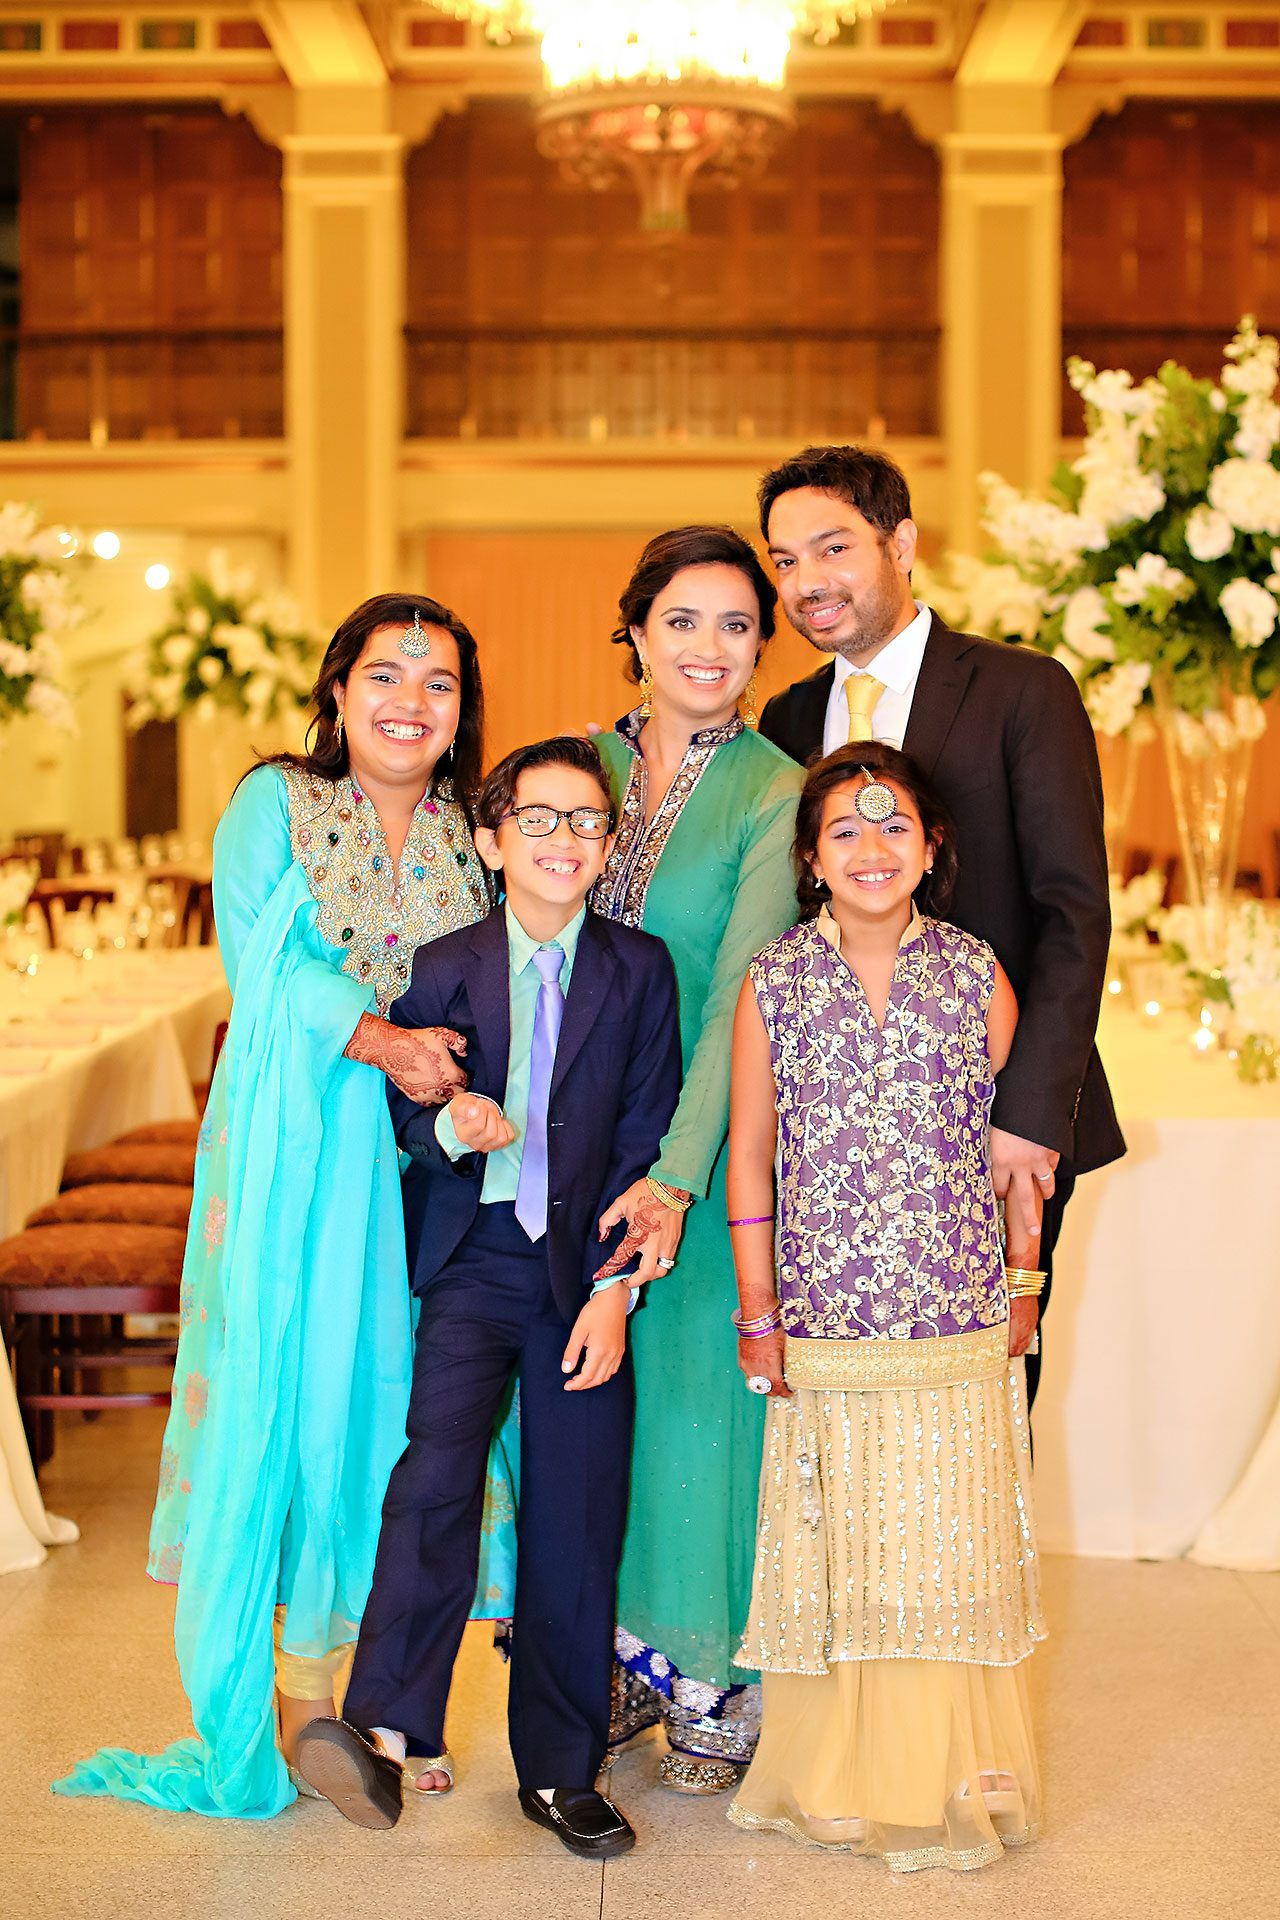 Haseeba Ammar Indianapolis Pakistani Wedding Reception 200